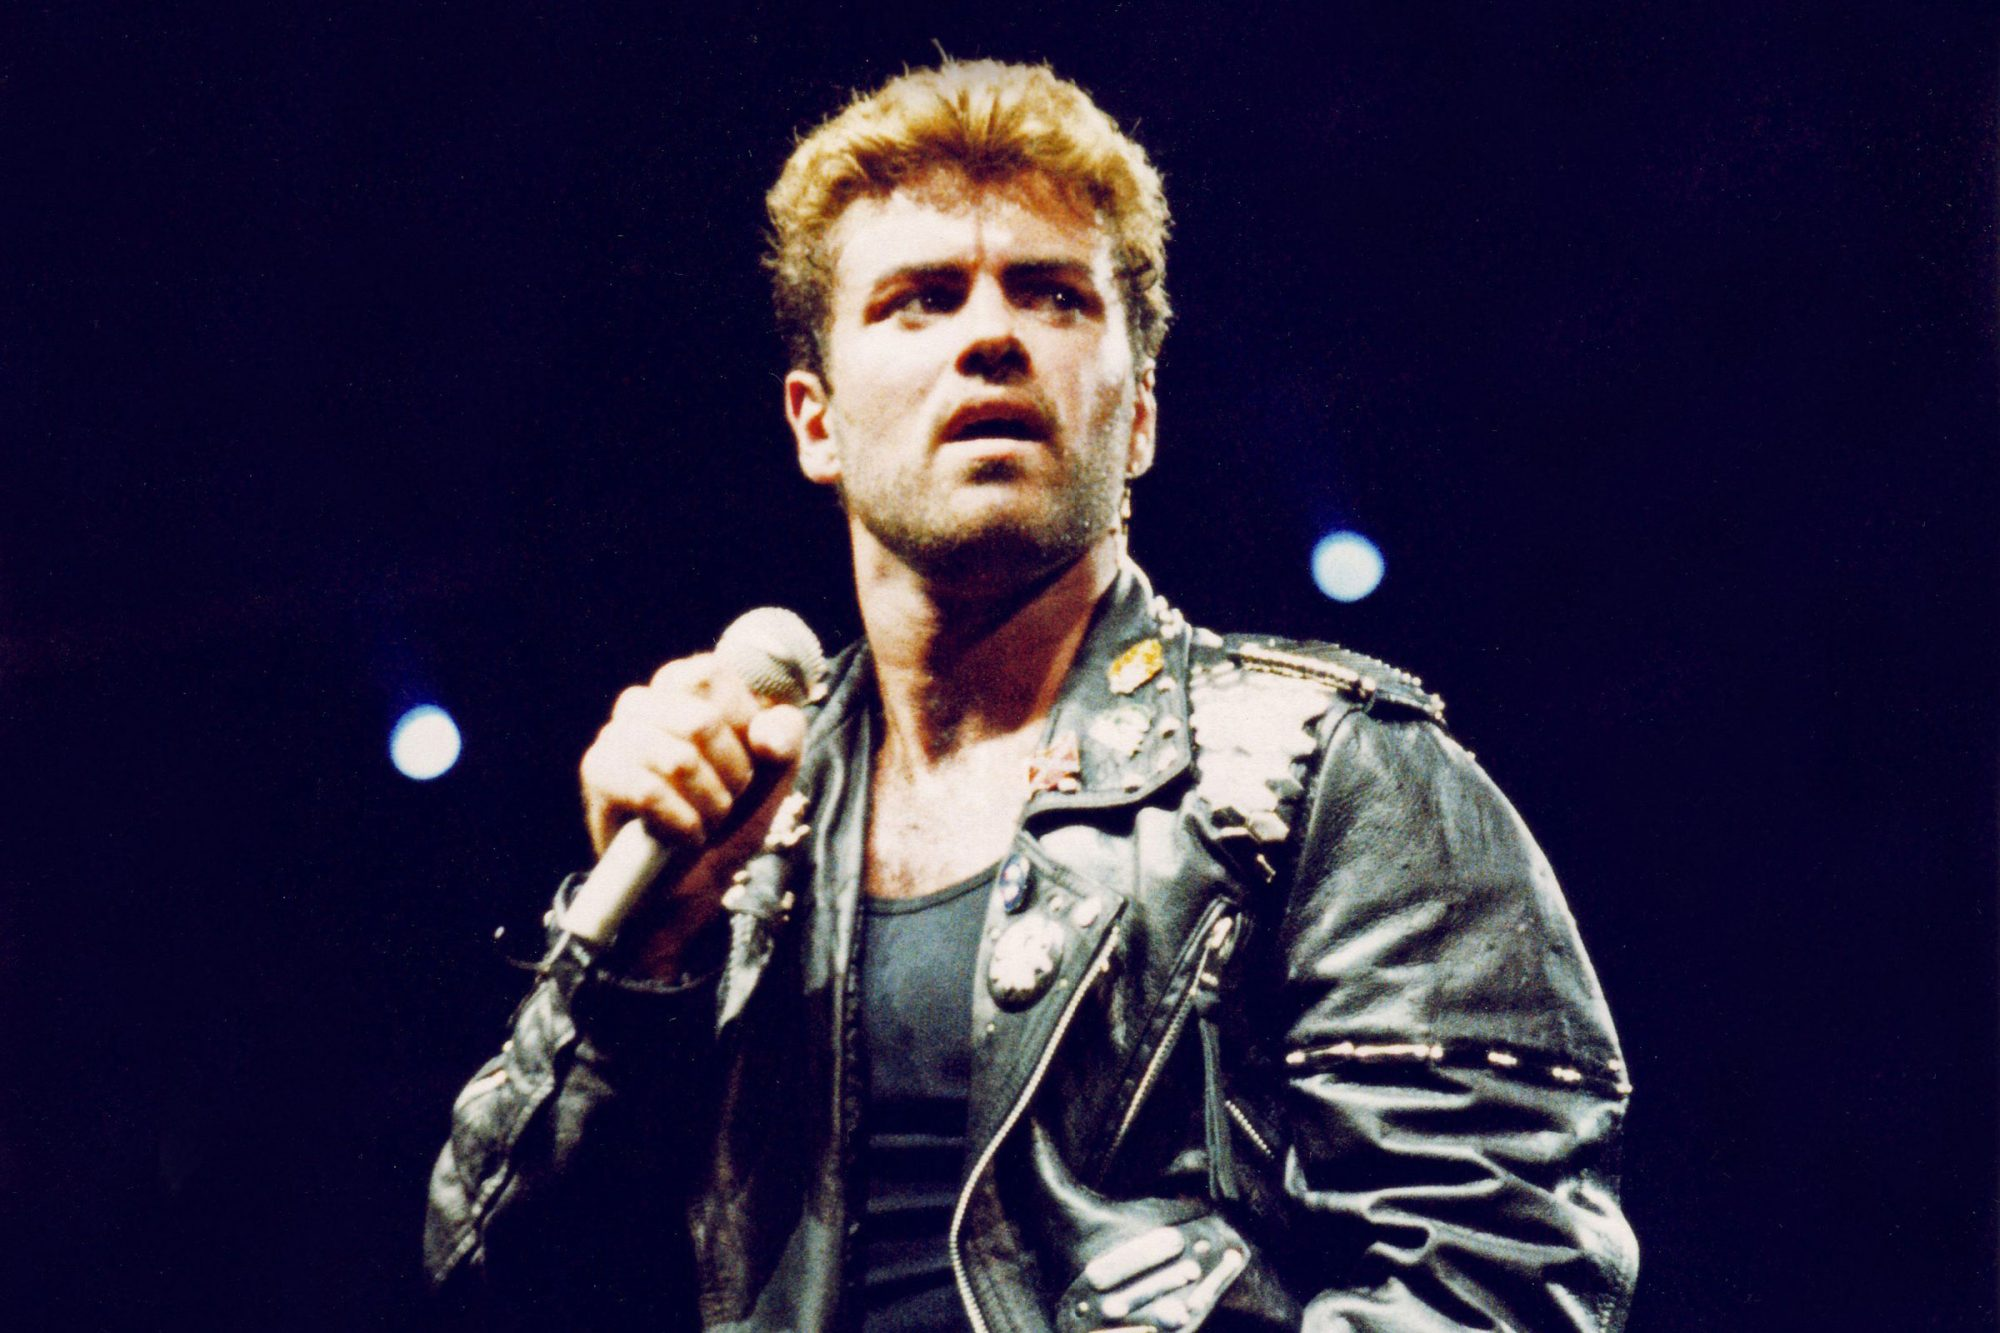 George Michael Performs At Earls Court In 1988